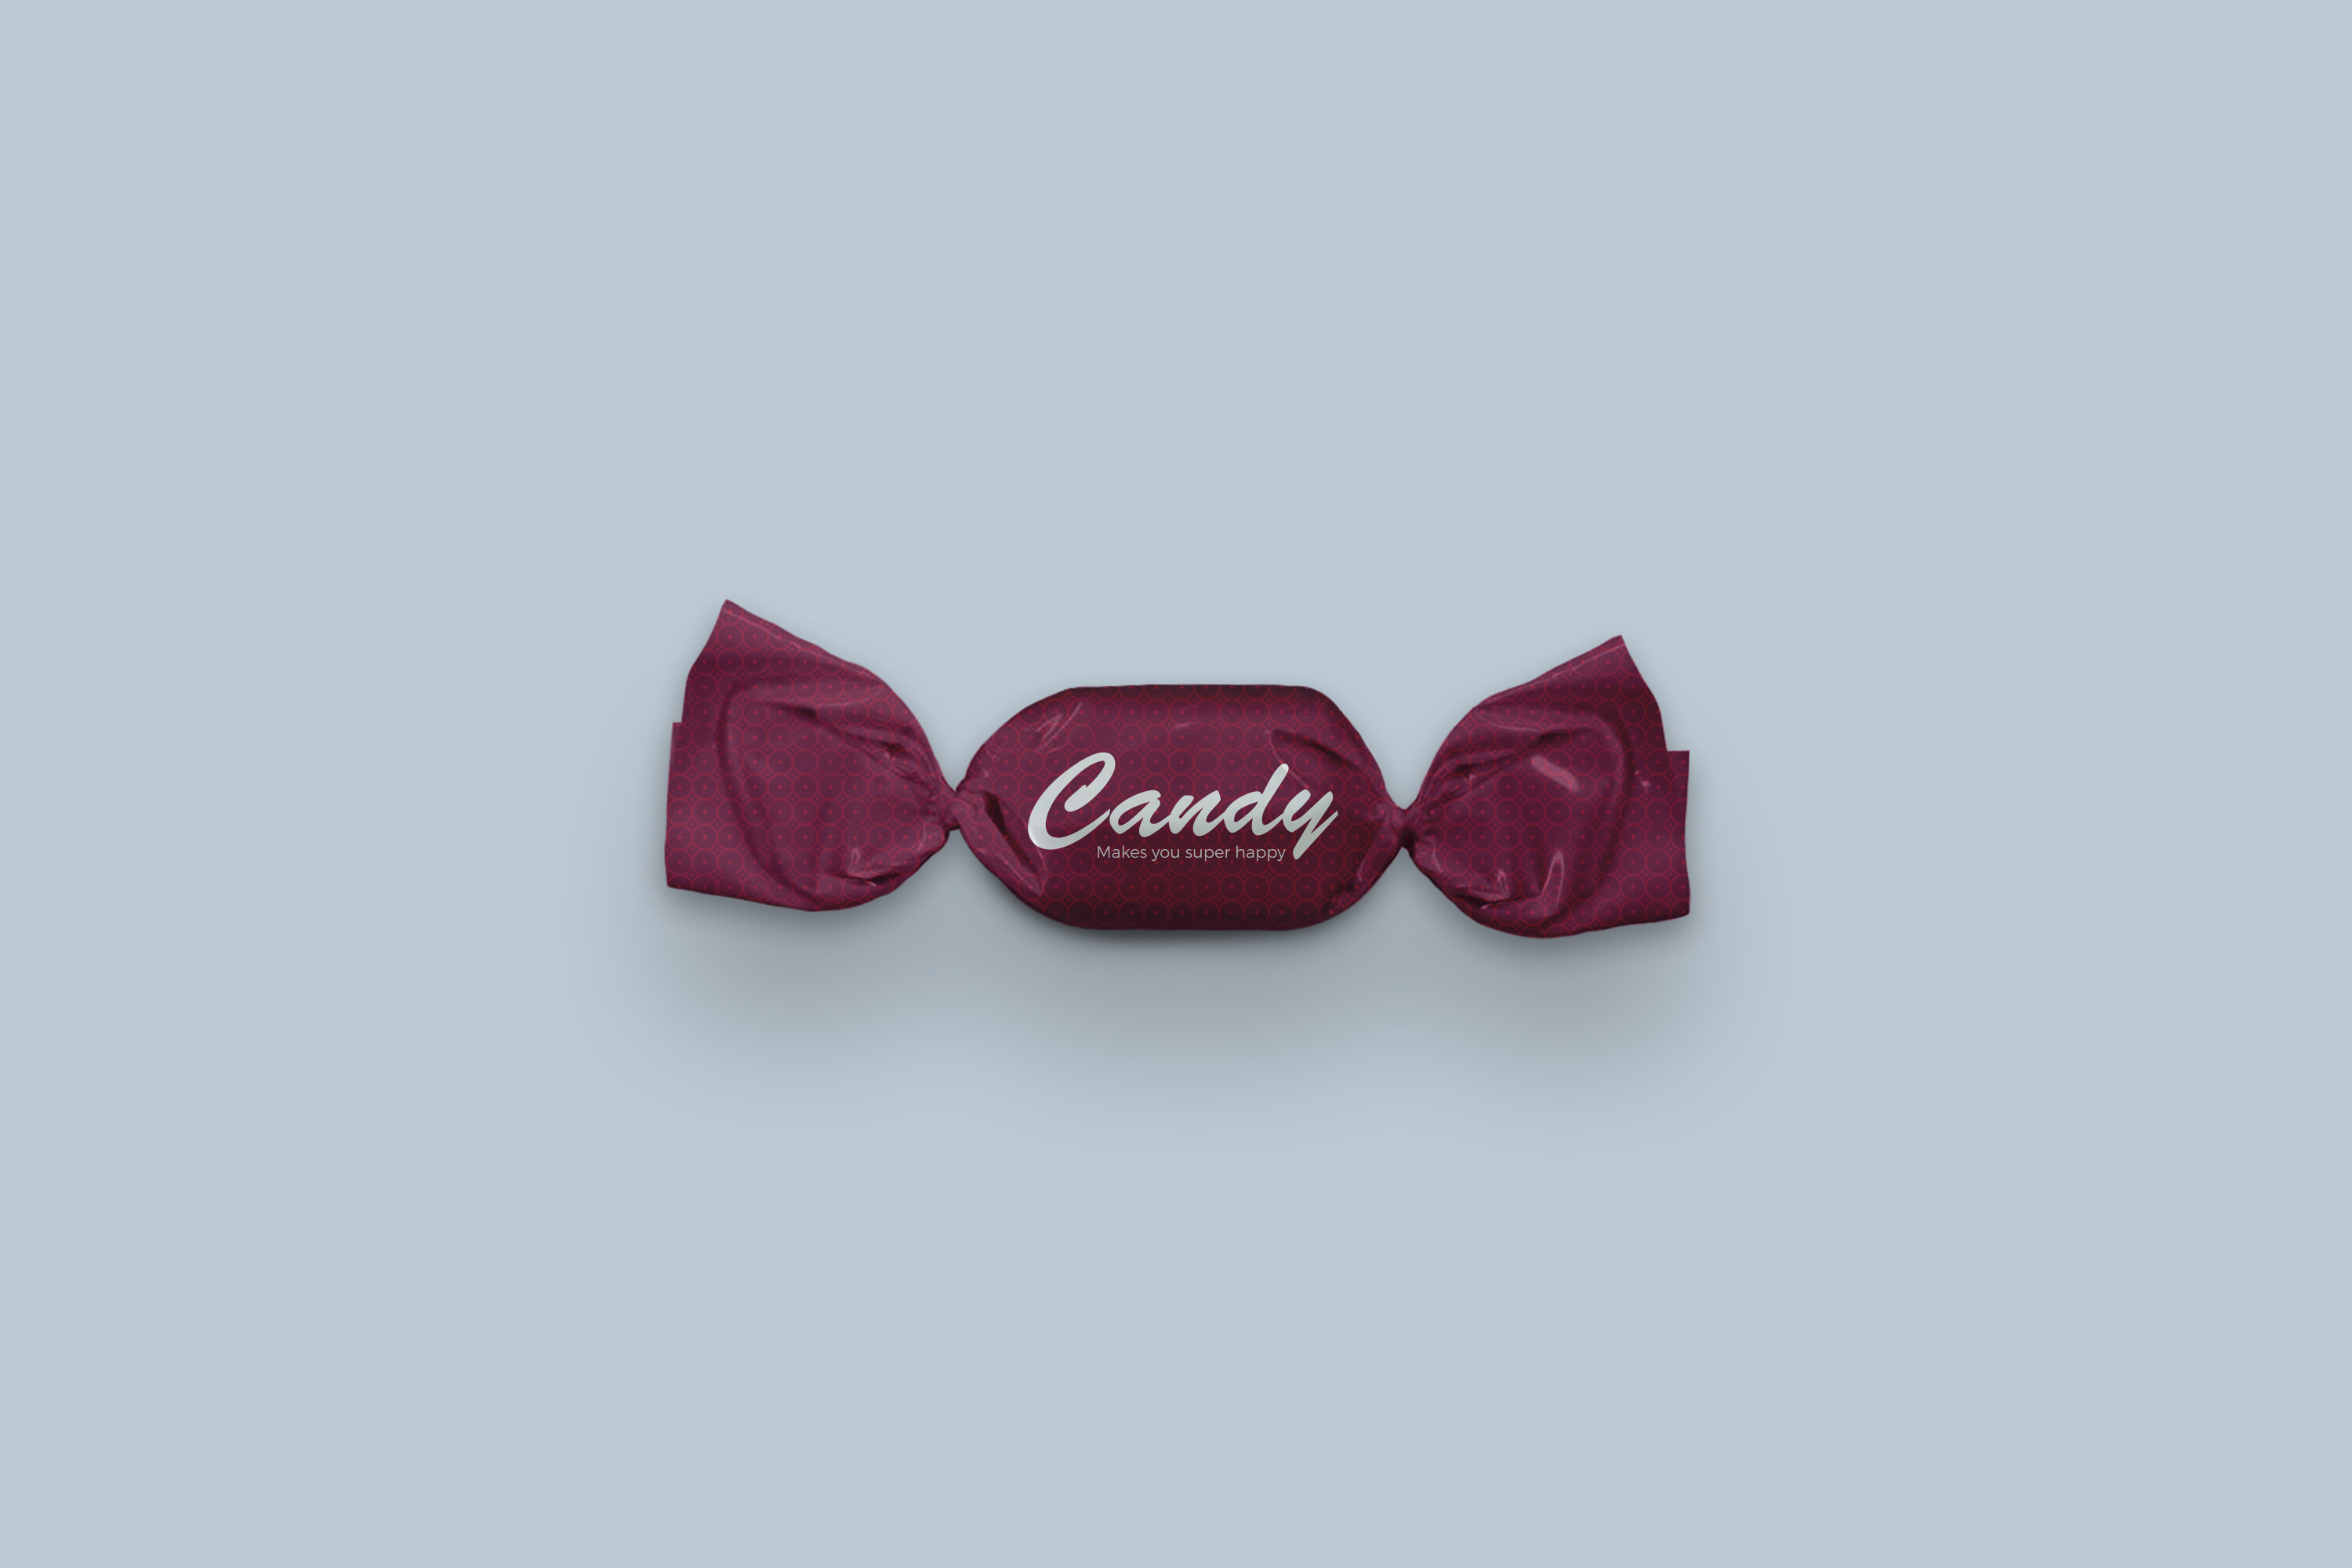 Candy Wrapper Mock-Ups Set example image 2